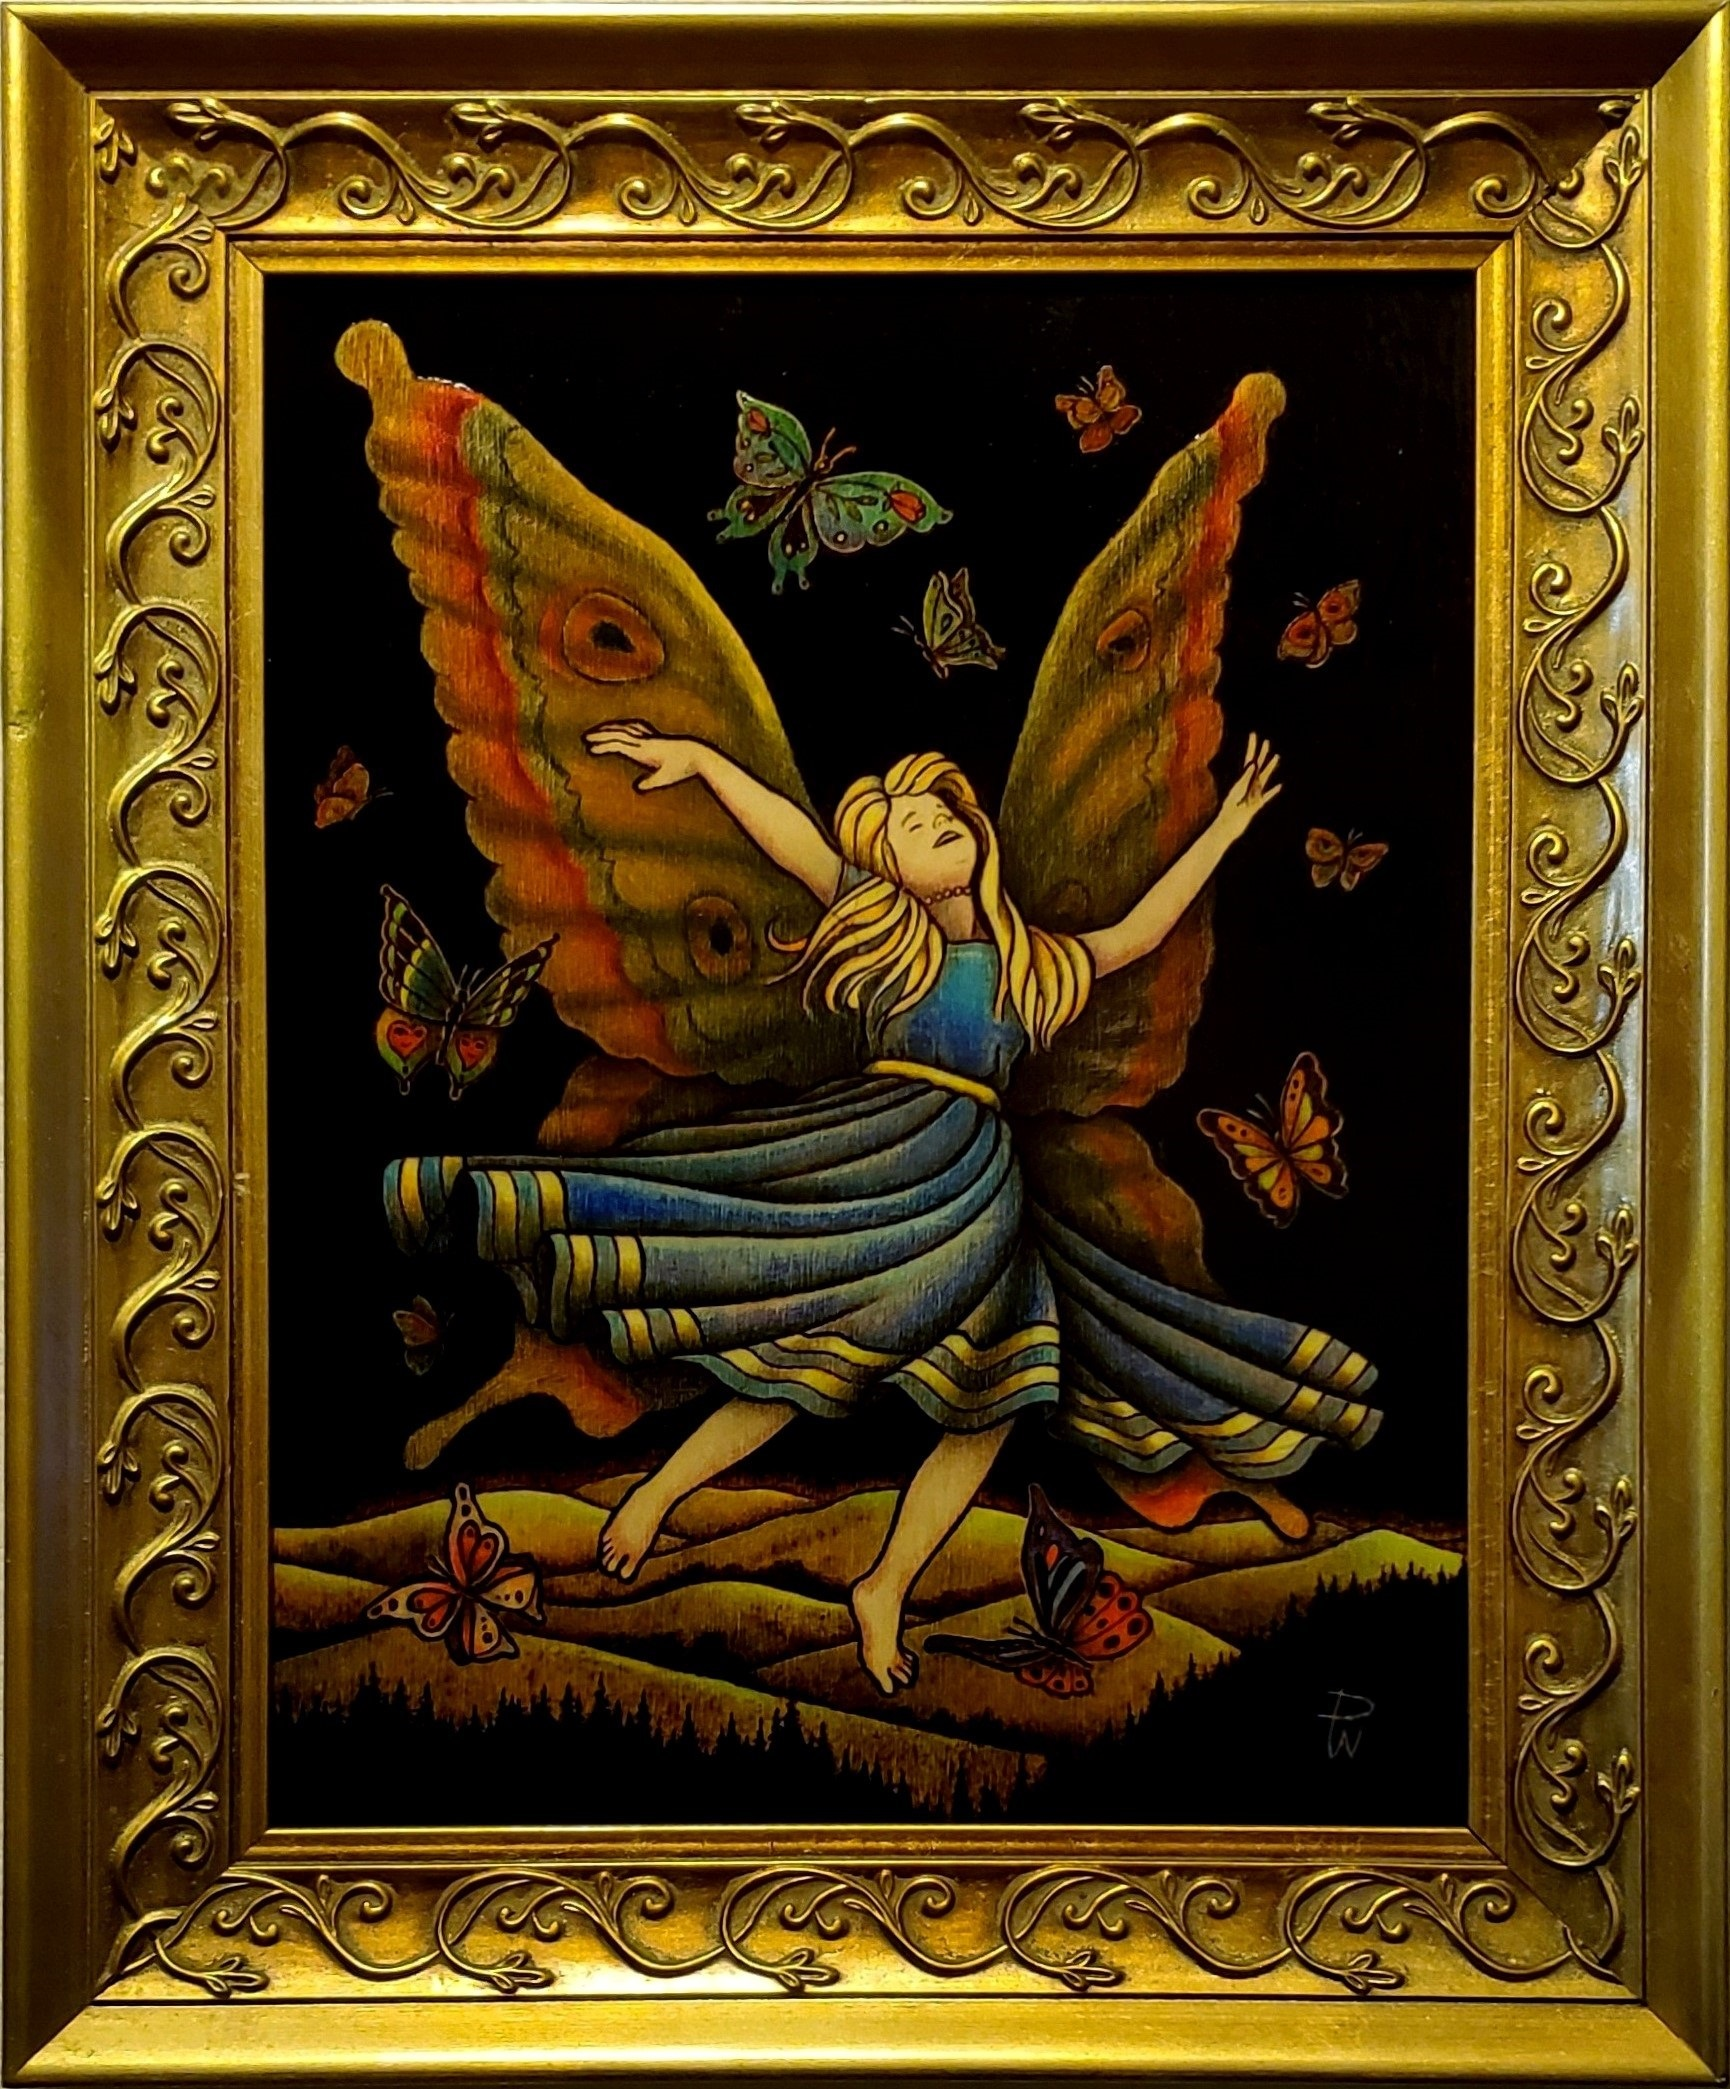 Girl with butterfly wings flying at night - pyrography on wood by Don White